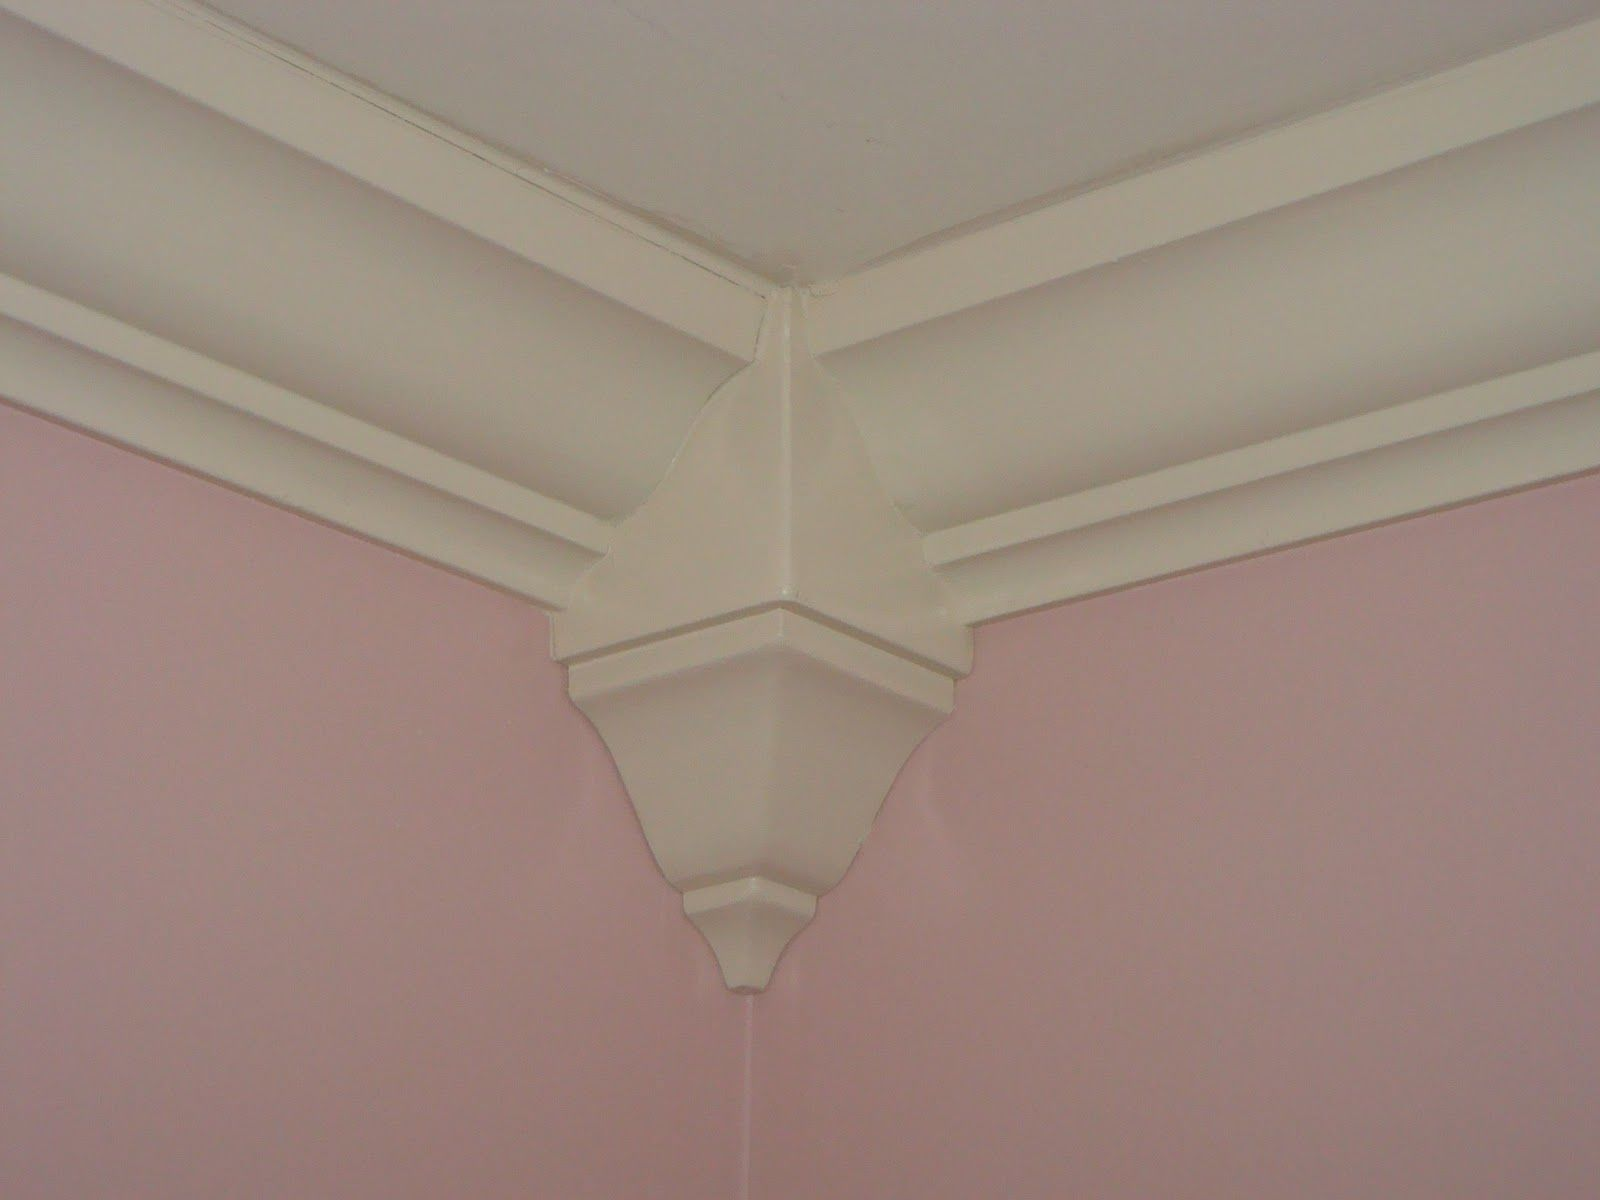 10 Cheap Ways To Make Your Home Look More Expensive Diy Crown Molding Diy Wainscoting Diy Molding